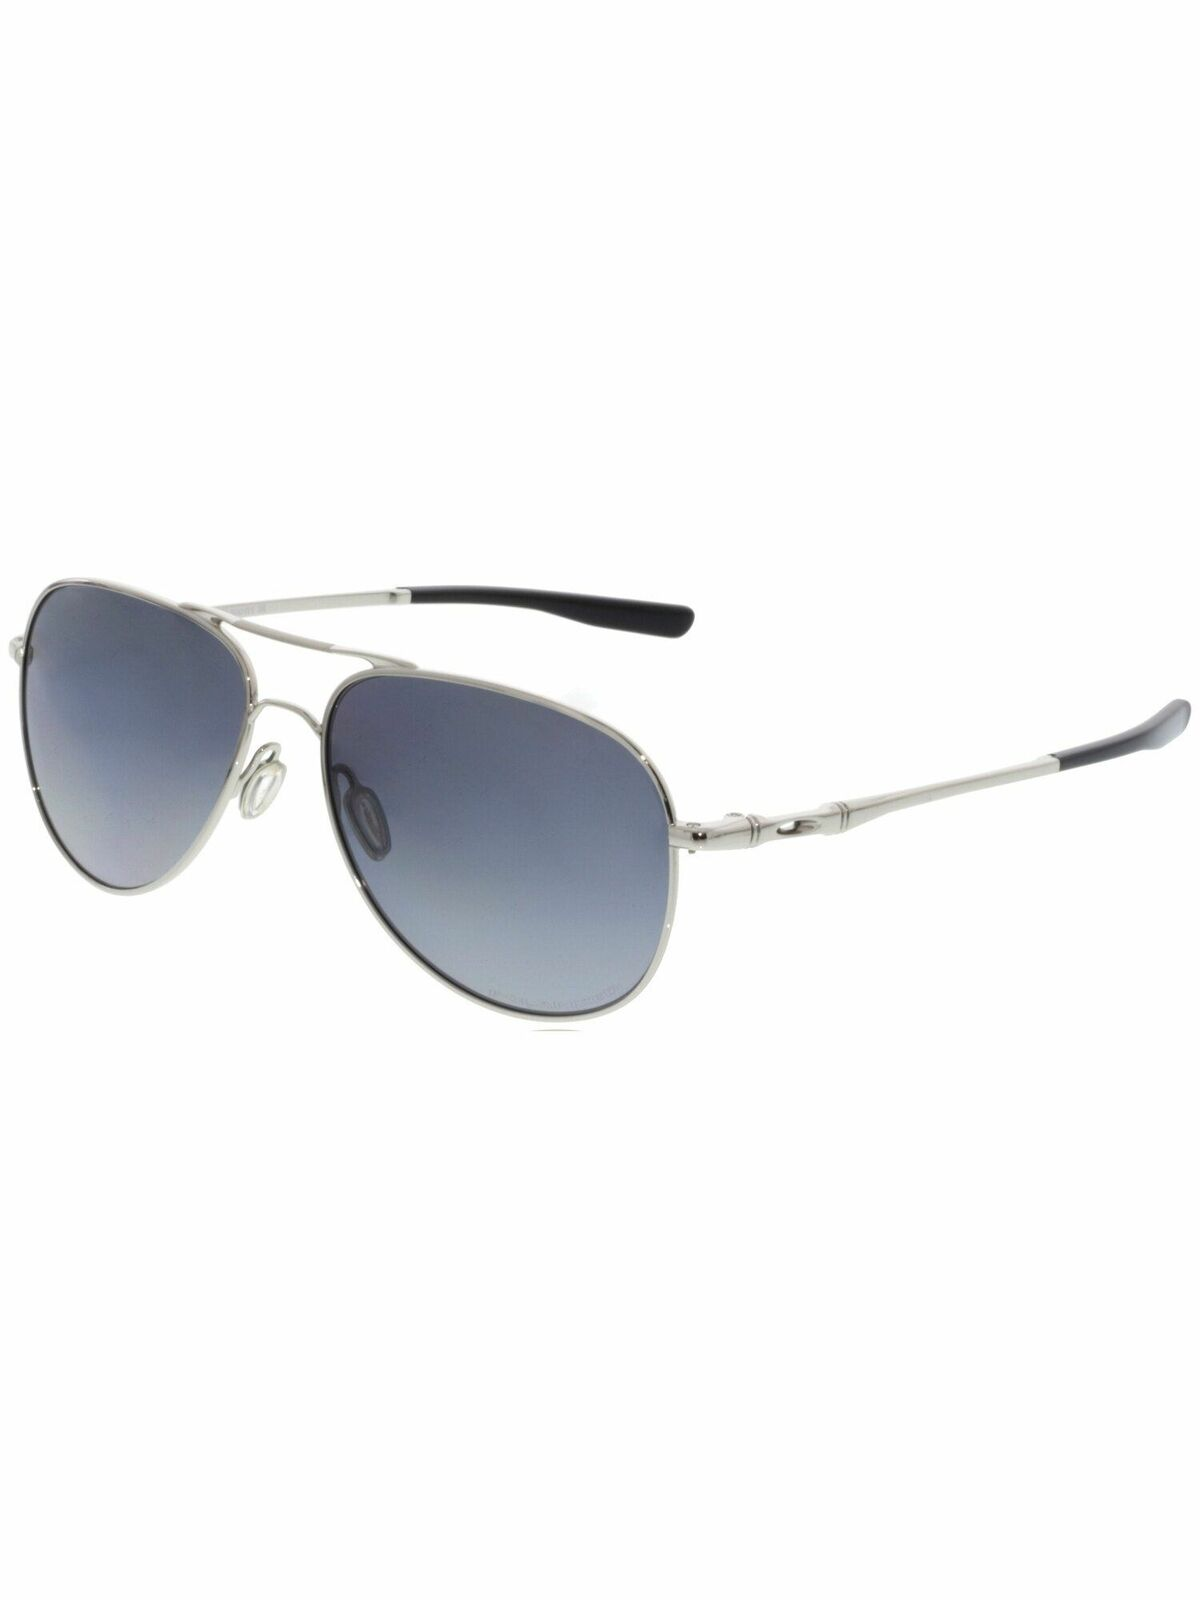 d47577db1c5b7 ... Grey Lens Polarized UPC 888392239440 product image for Oakley Oo4119-0258  Elmont Medium Polished Chrome  Polarized Aviator